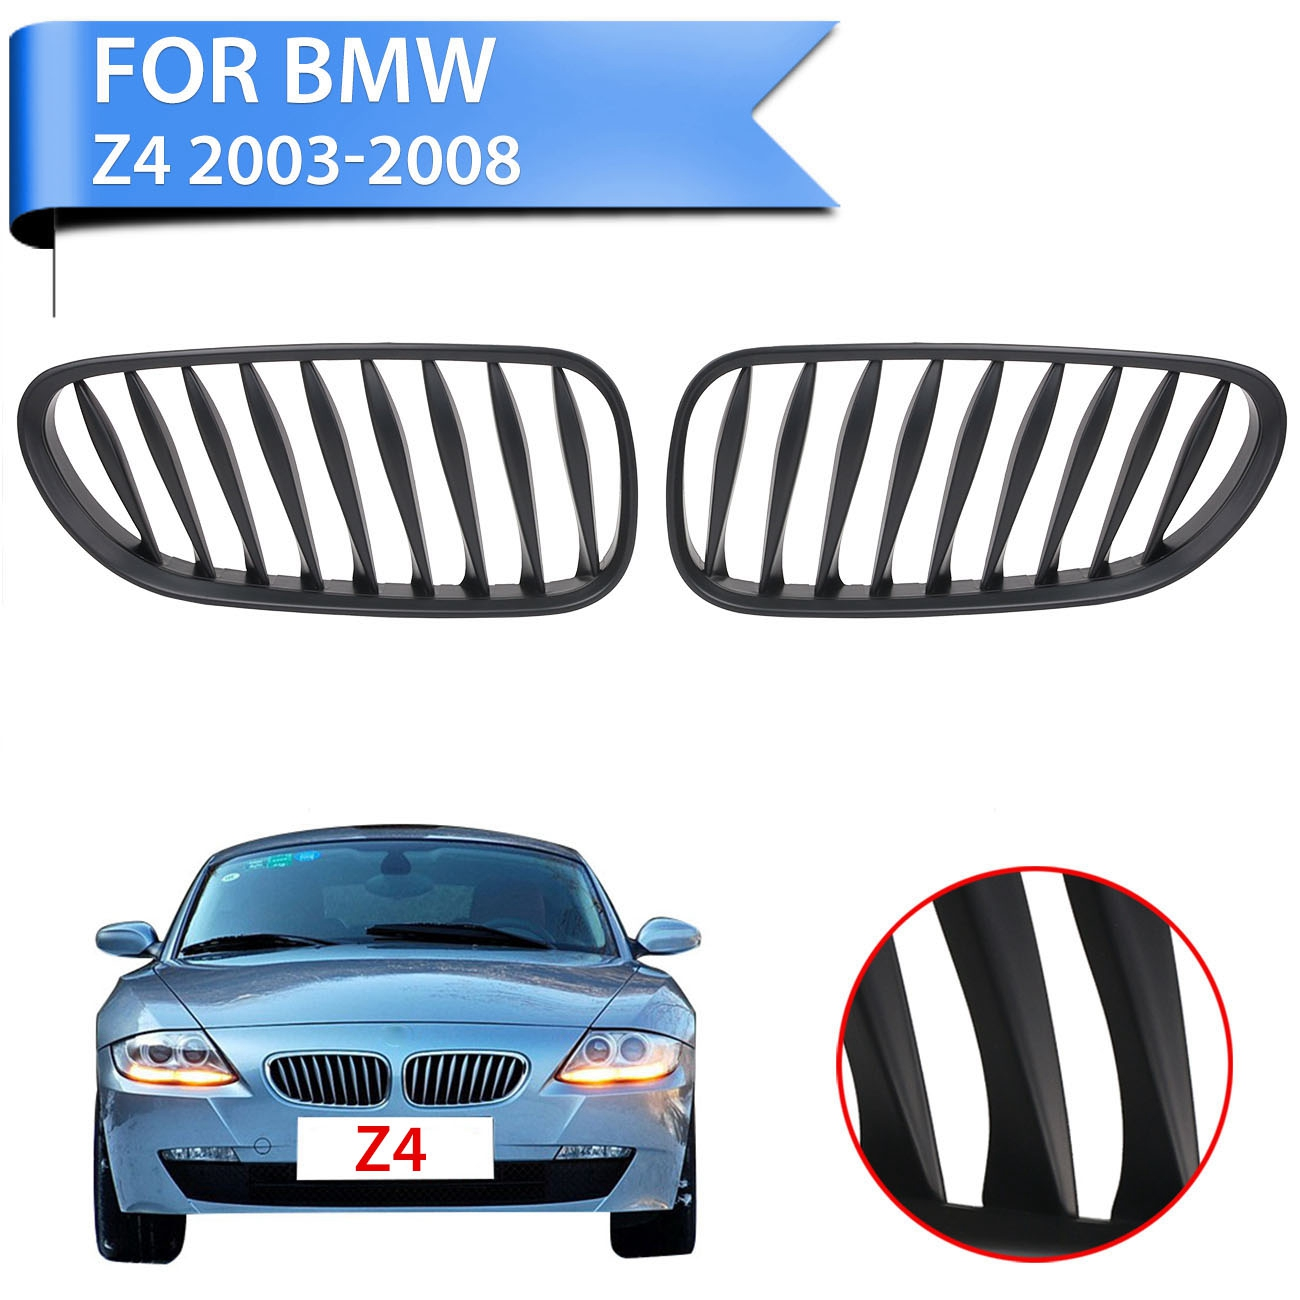 Bmw Z4 E86 Review: 2PC Matte Black Front Kidney Grille Grill Lattice For BMW